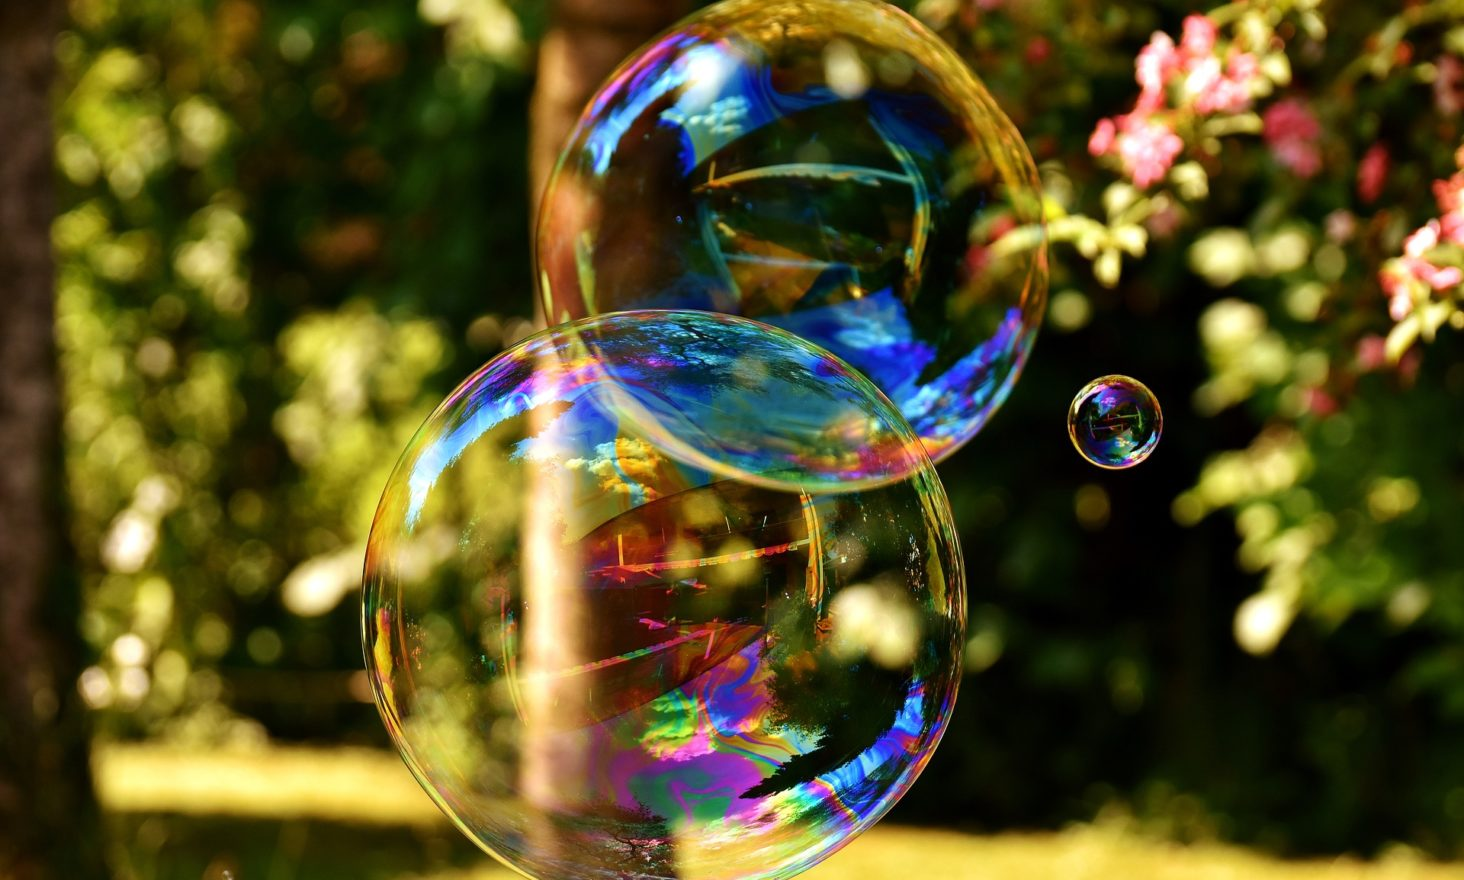 How Does Bitcoin Work? Is It Really a Bubble?